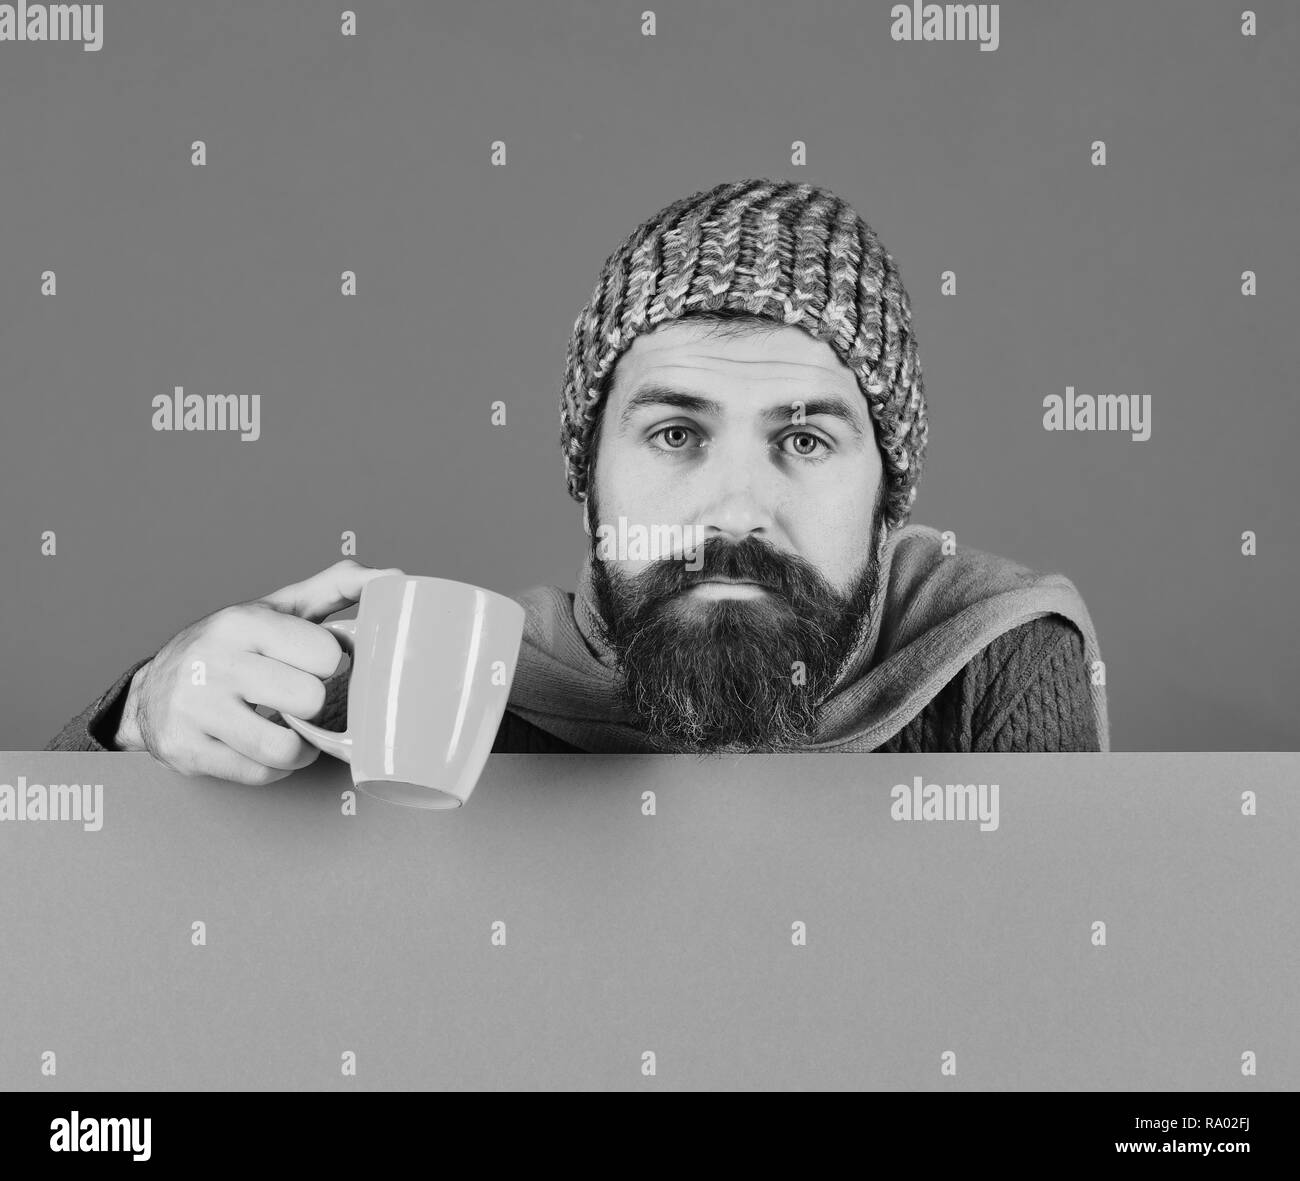 Fall season and influenza. Man with beard holds orange cup of medicine. Illness and autumn sickness concept. Guy with tired or depressed face wears warm hat on green and cyan background, copy space - Stock Image